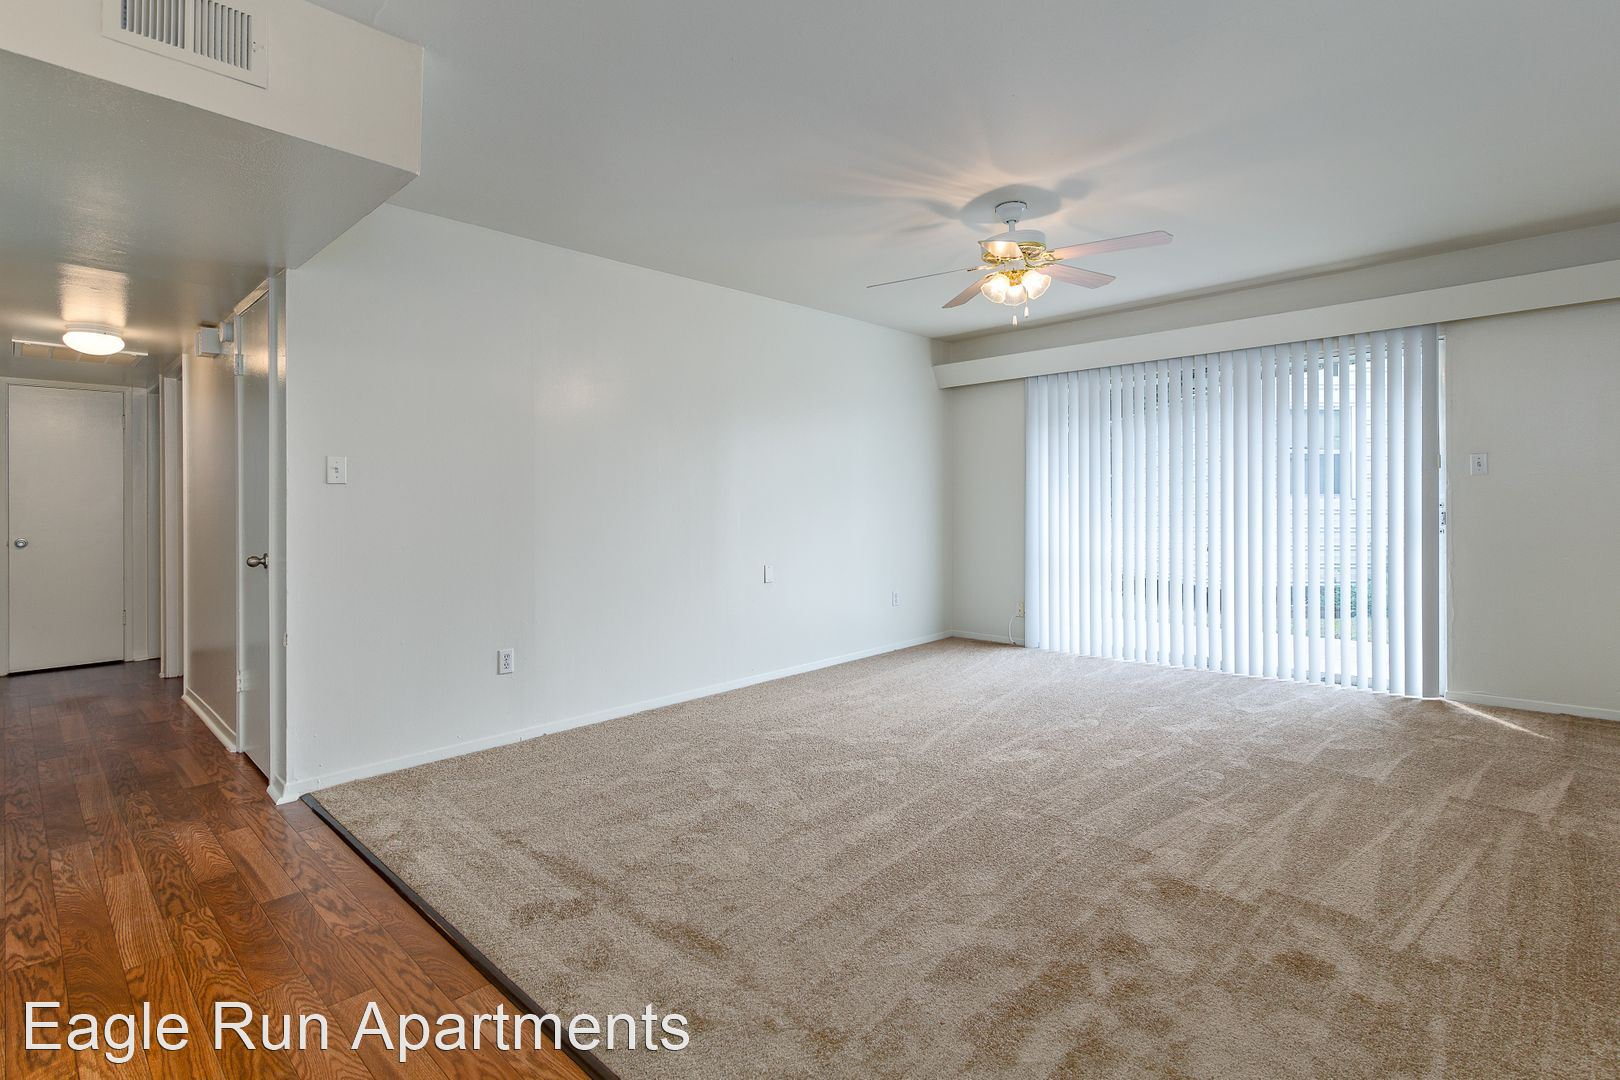 Apartment for Rent in Lafayette